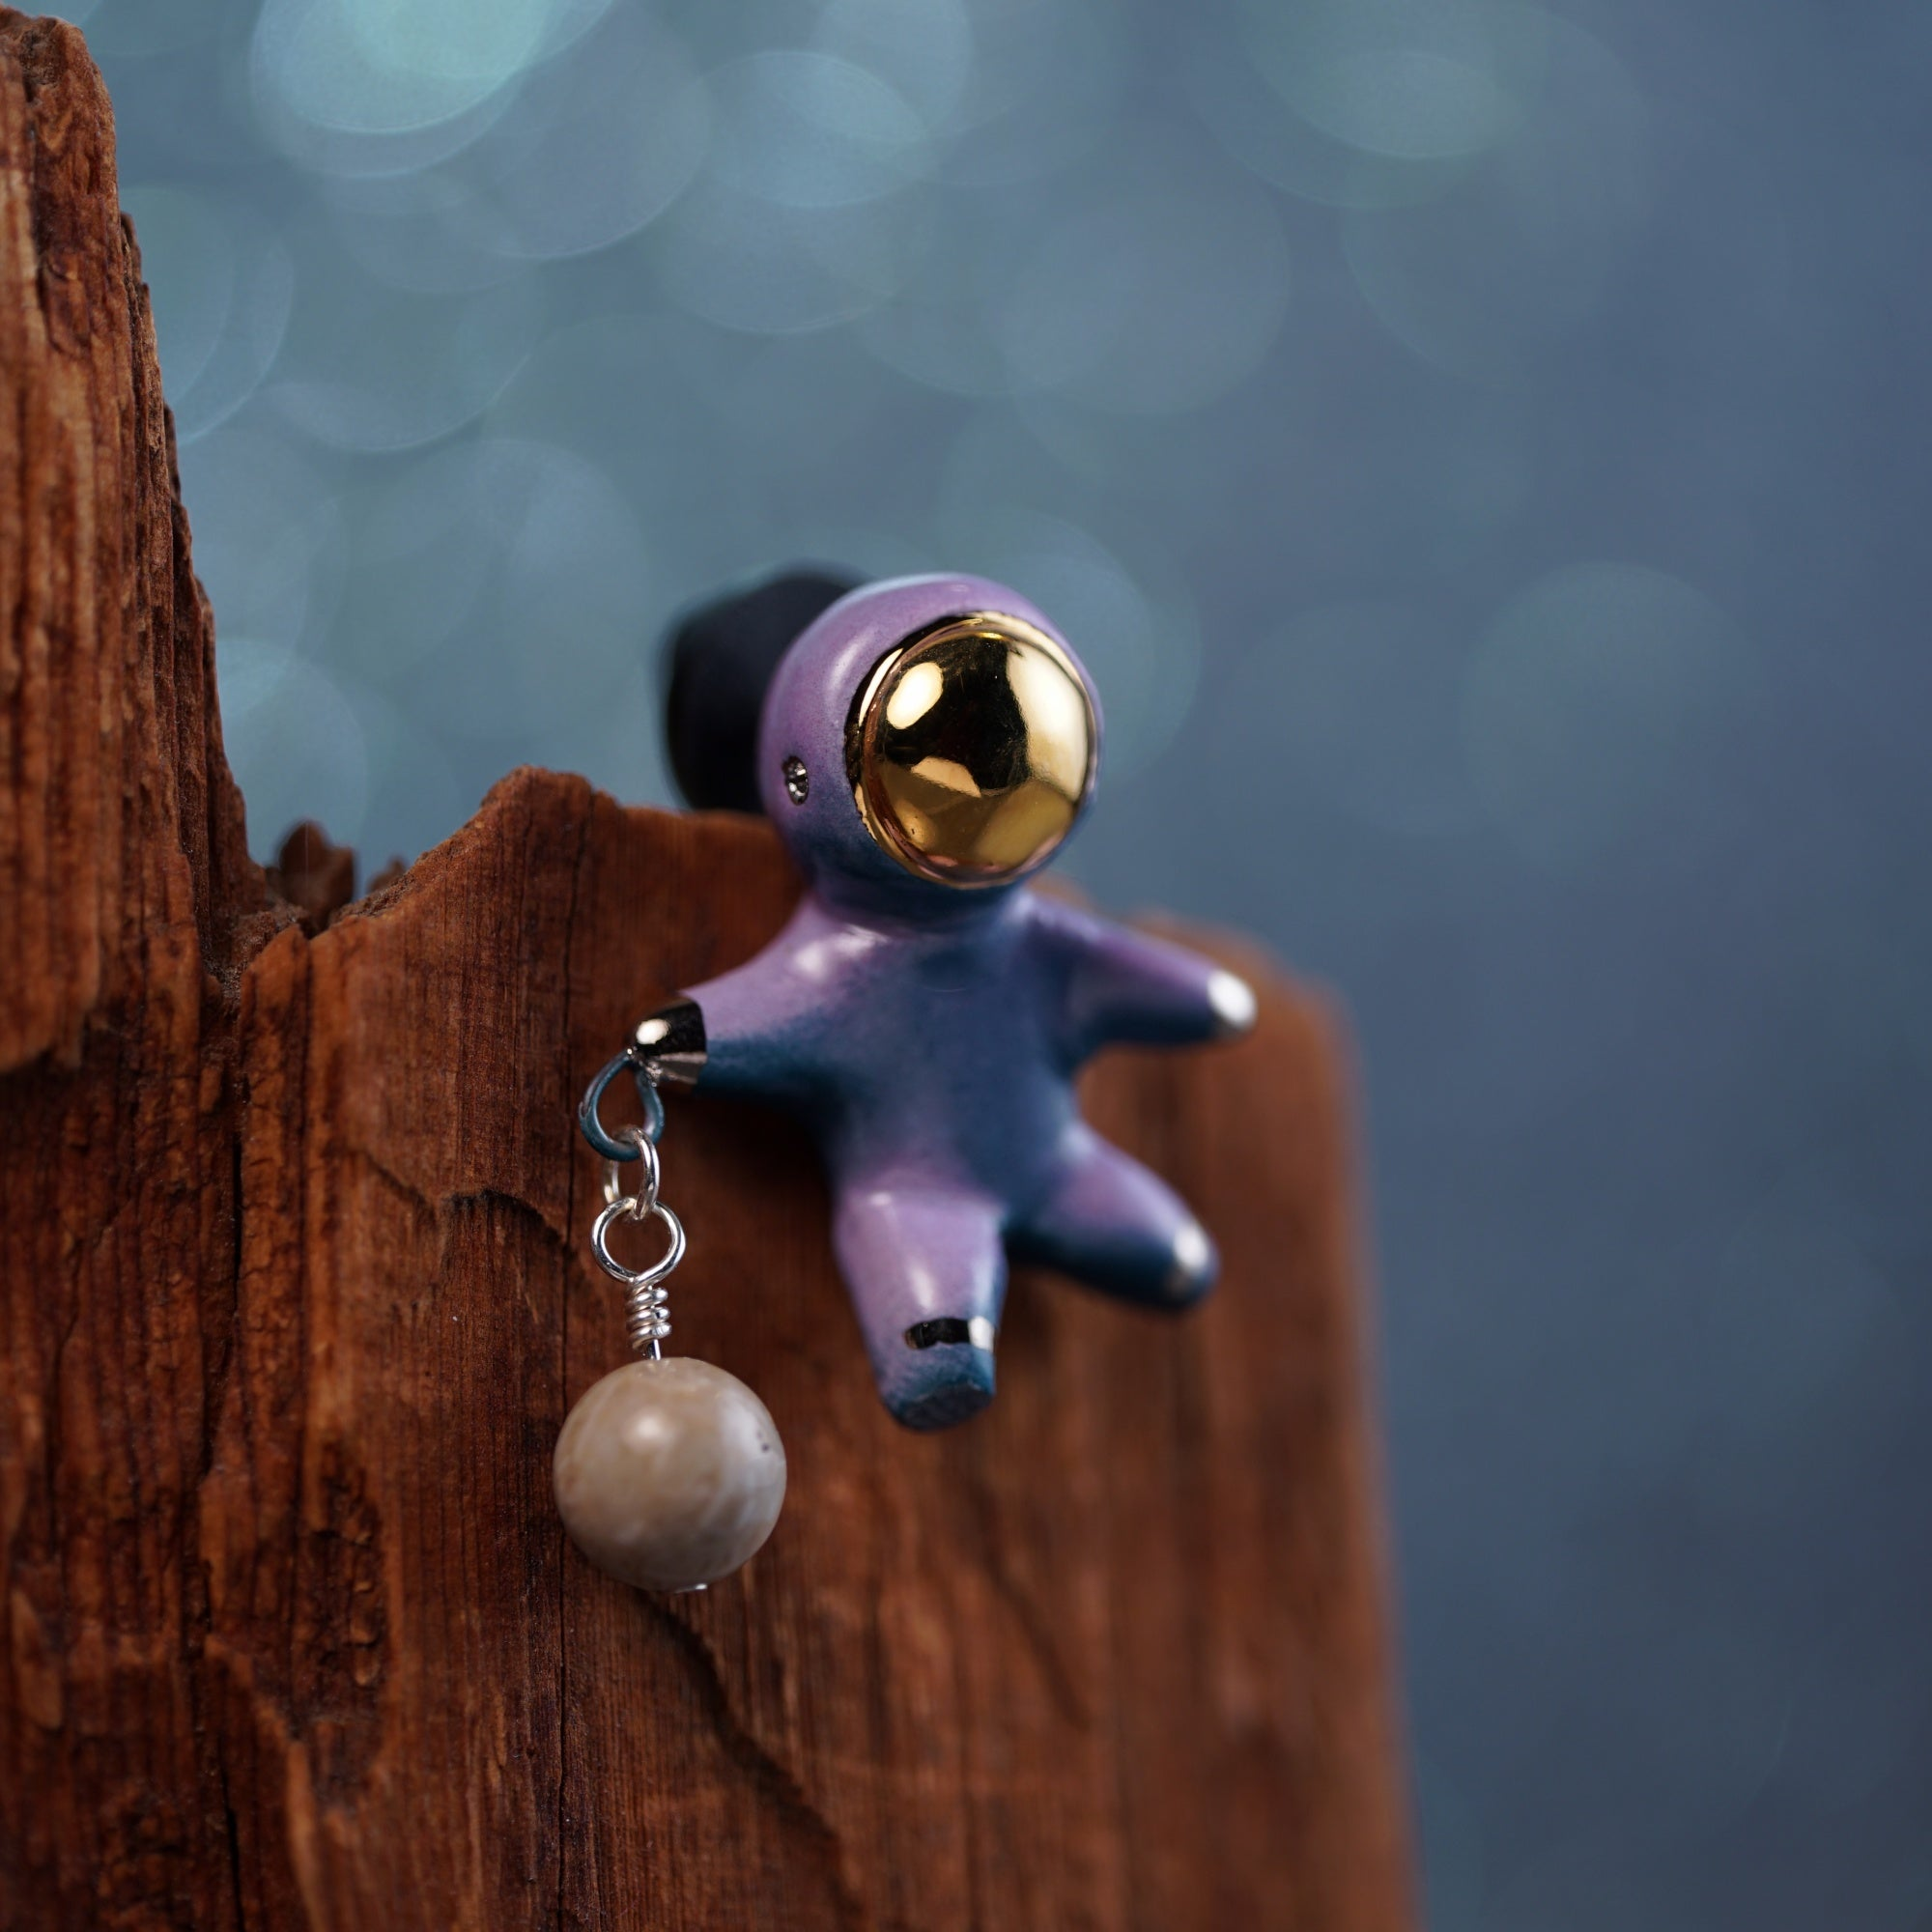 Floating Charm Astronaut Pin